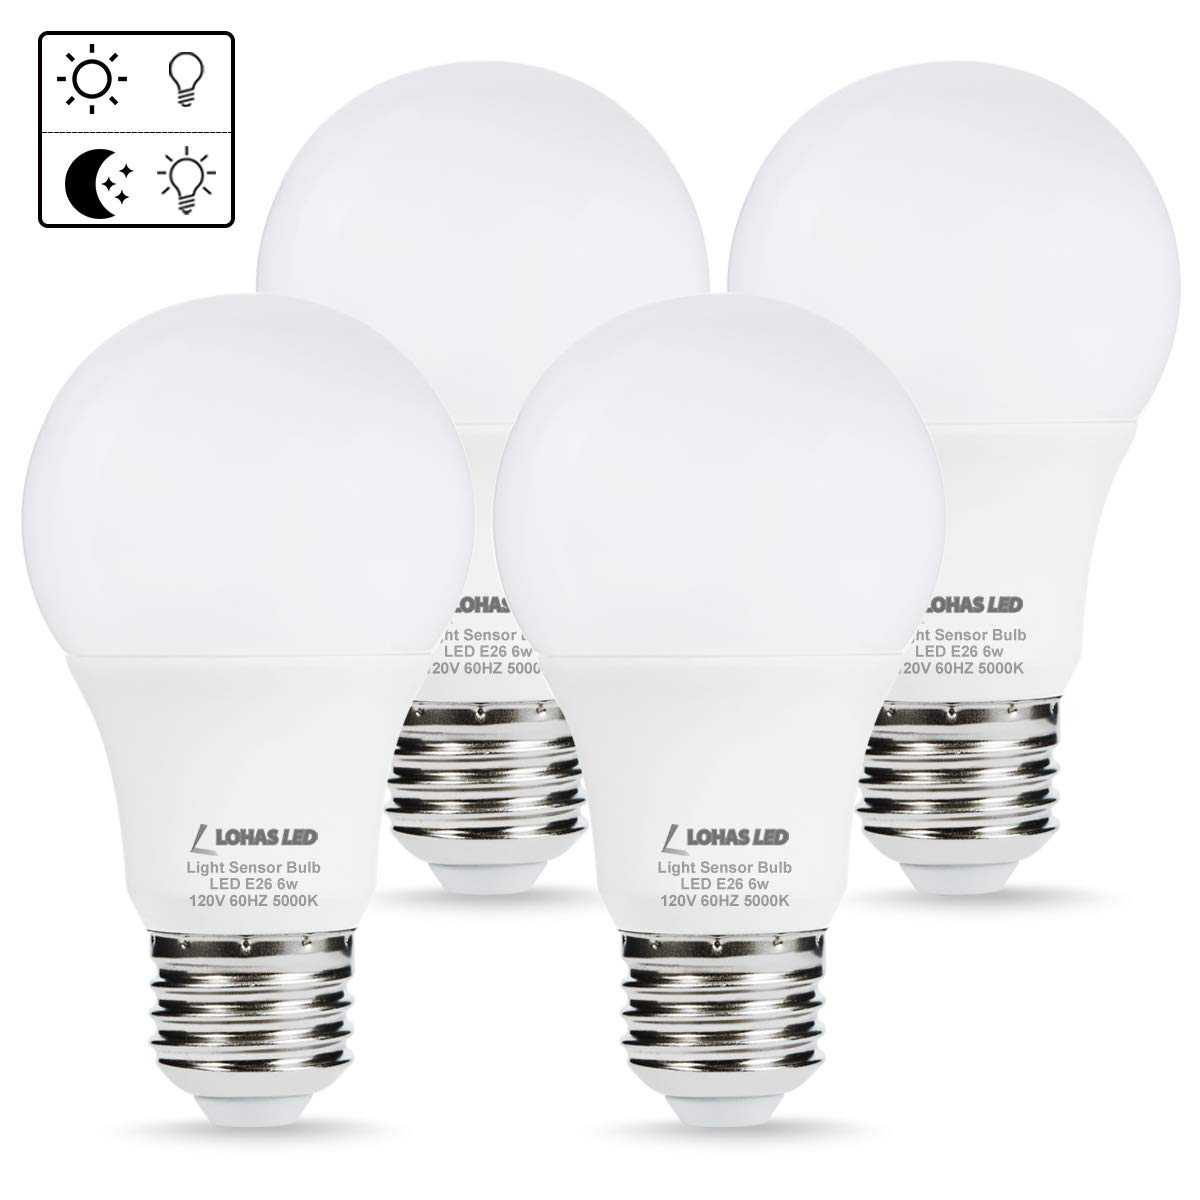 Sensor Light 4 Pack